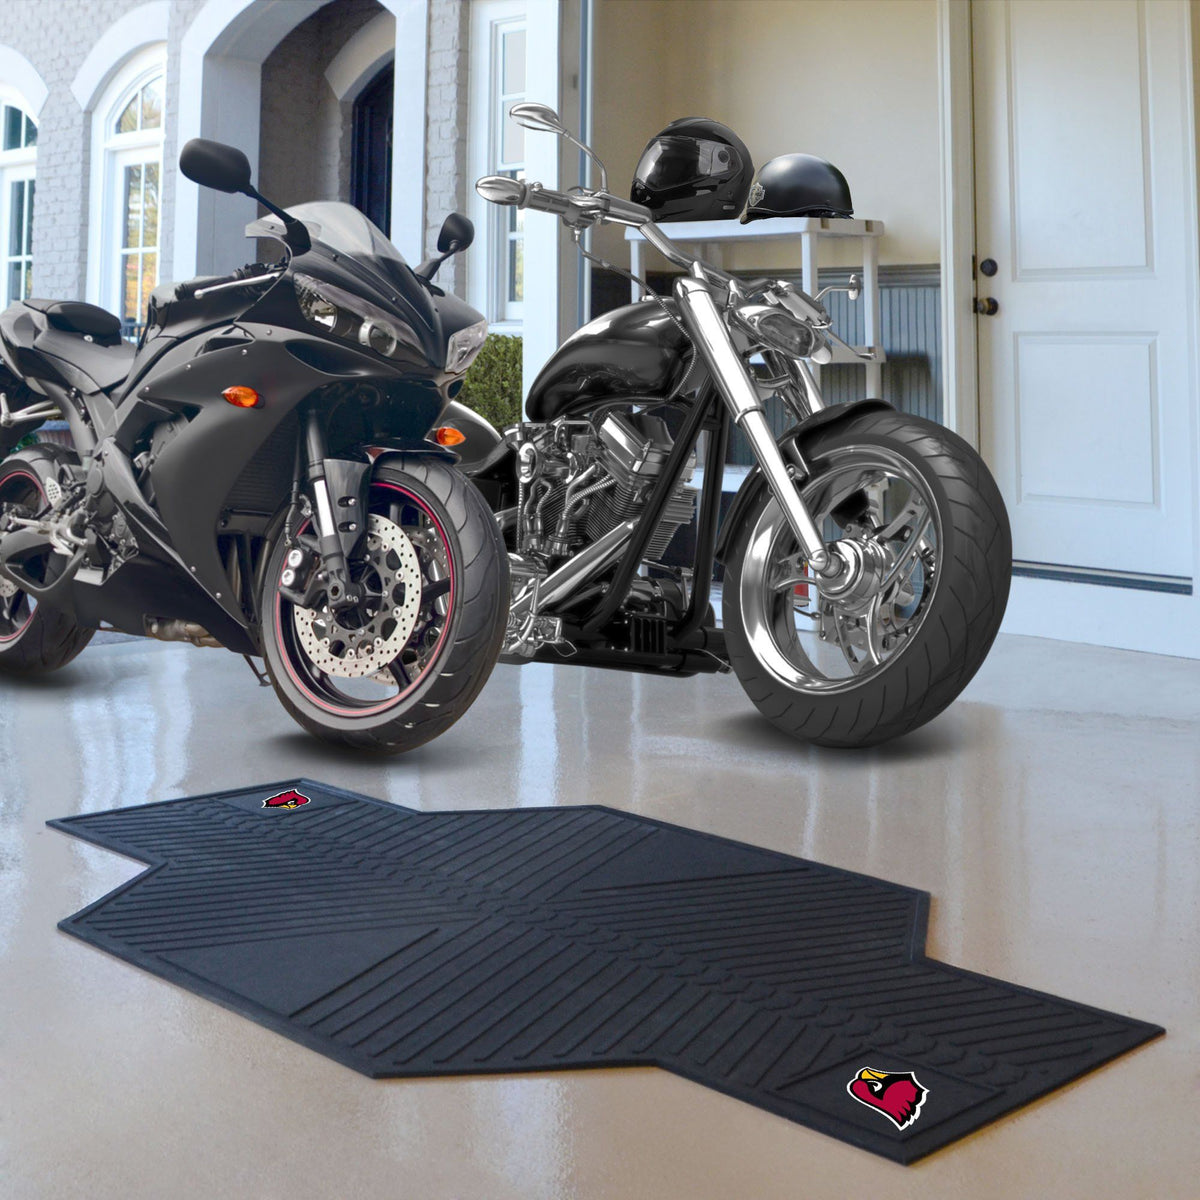 "NFL - Motorcycle Mat, 82.5"" x 42"" NFL Mats, Motorcycle Accessory, Motorcycle Mat, NFL, Auto Fan Mats Arizona Cardinals"